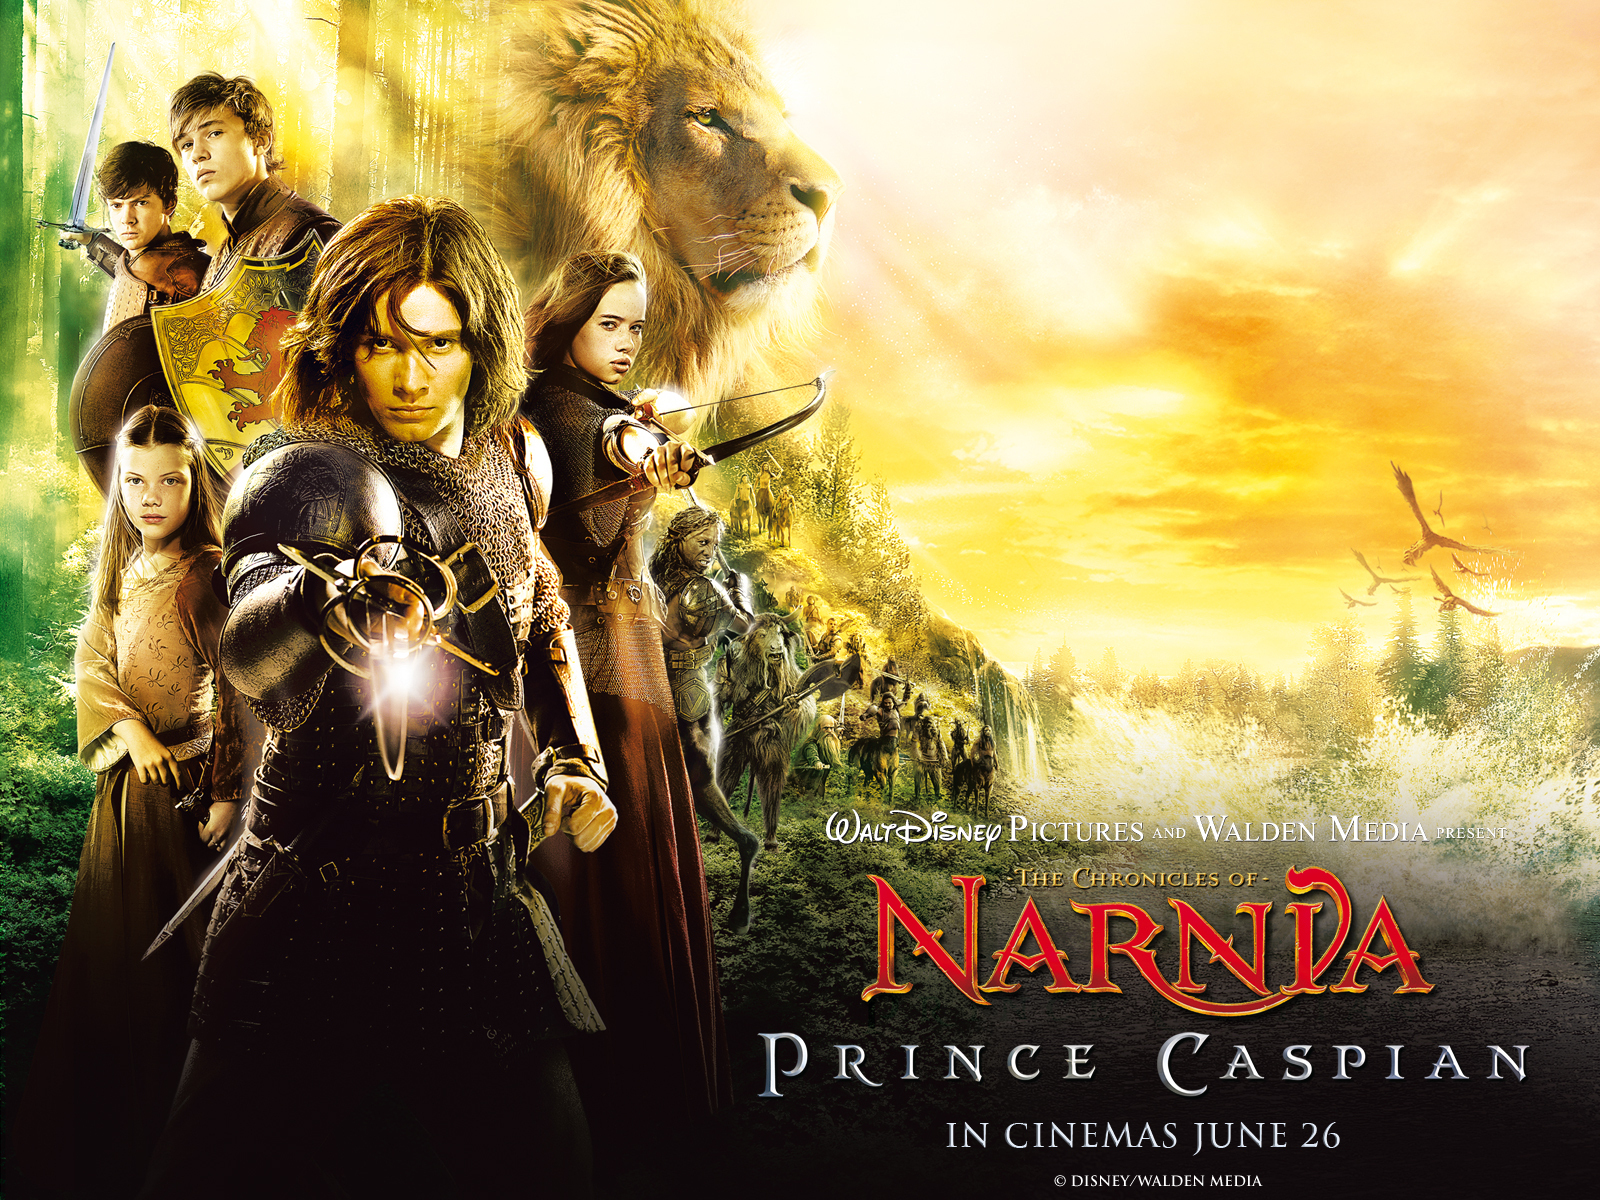 Harry Potter Vs Narnia Images Chronicles Of Narnia Prince Caspian